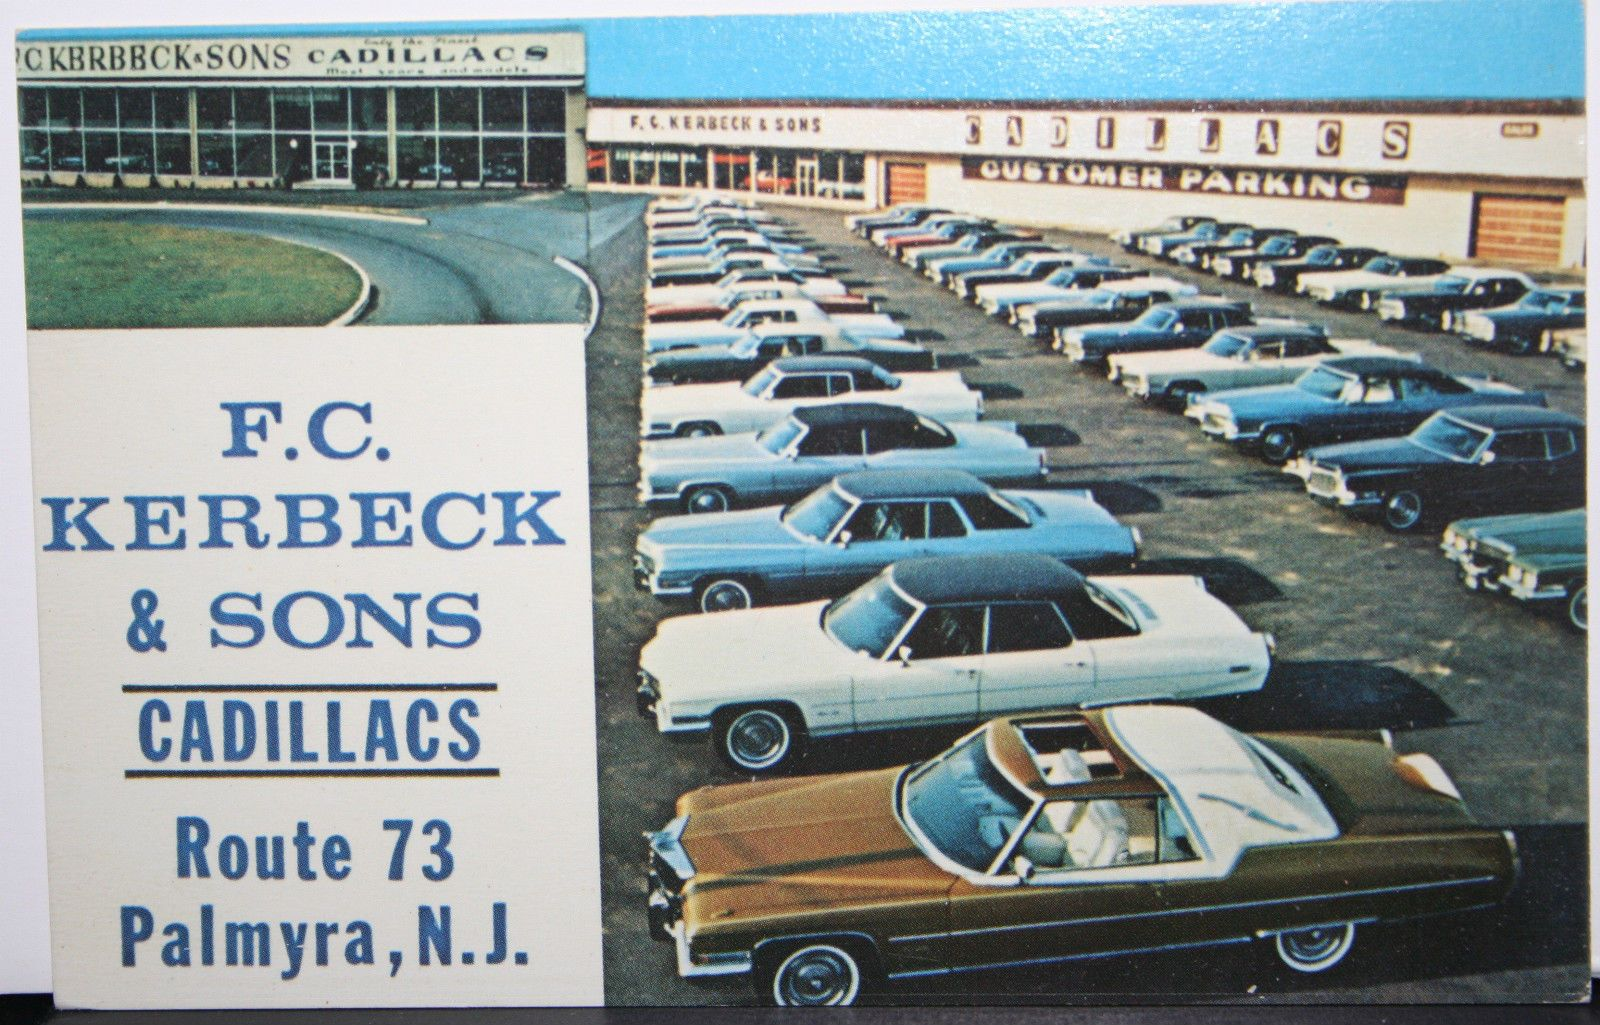 1972 cadillac dealer f c kerbeck sons palmyra nj look at that